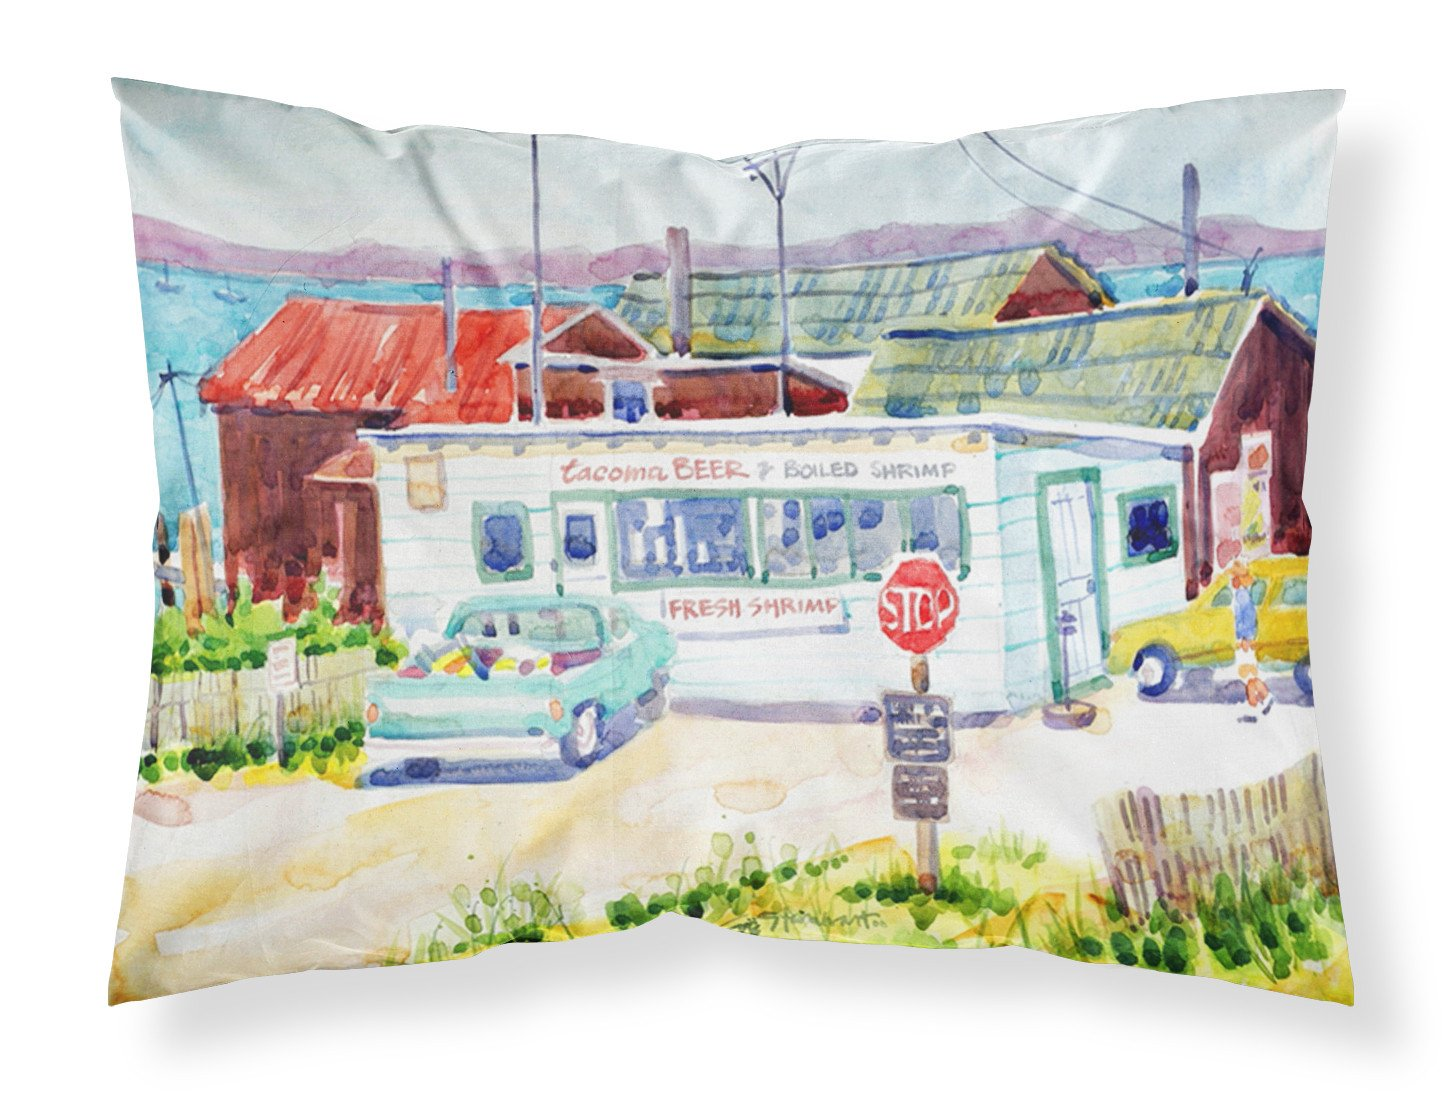 Seafood Shack for fresh shrimp Moisture wicking Fabric standard pillowcase by Caroline's Treasures